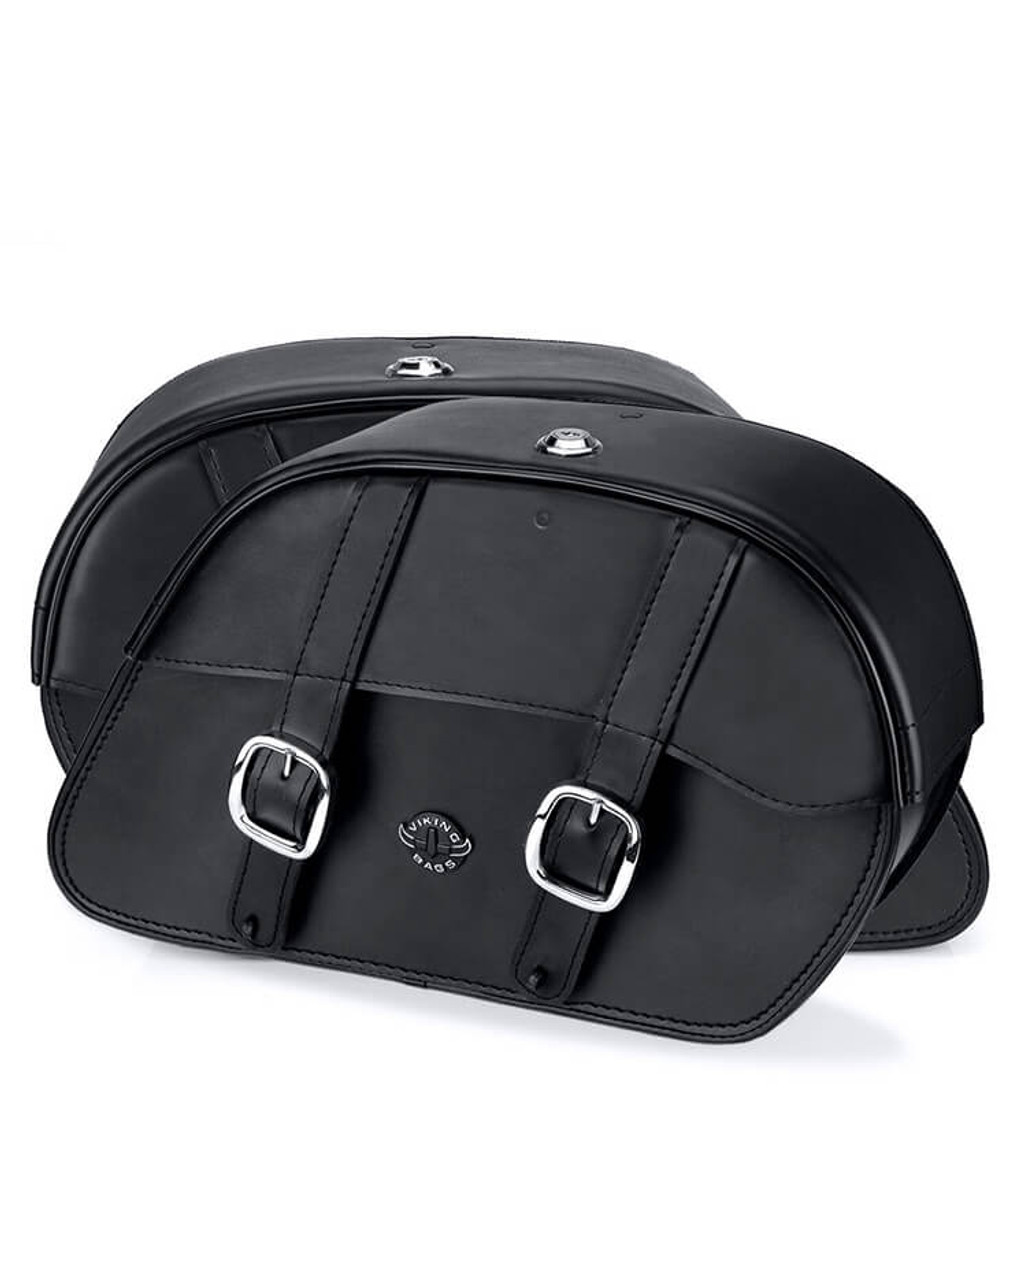 VikingBags Skarner Large Double Strap Leather Motorcycle Saddlebags For Harley Dyna Switchback Both Bags View